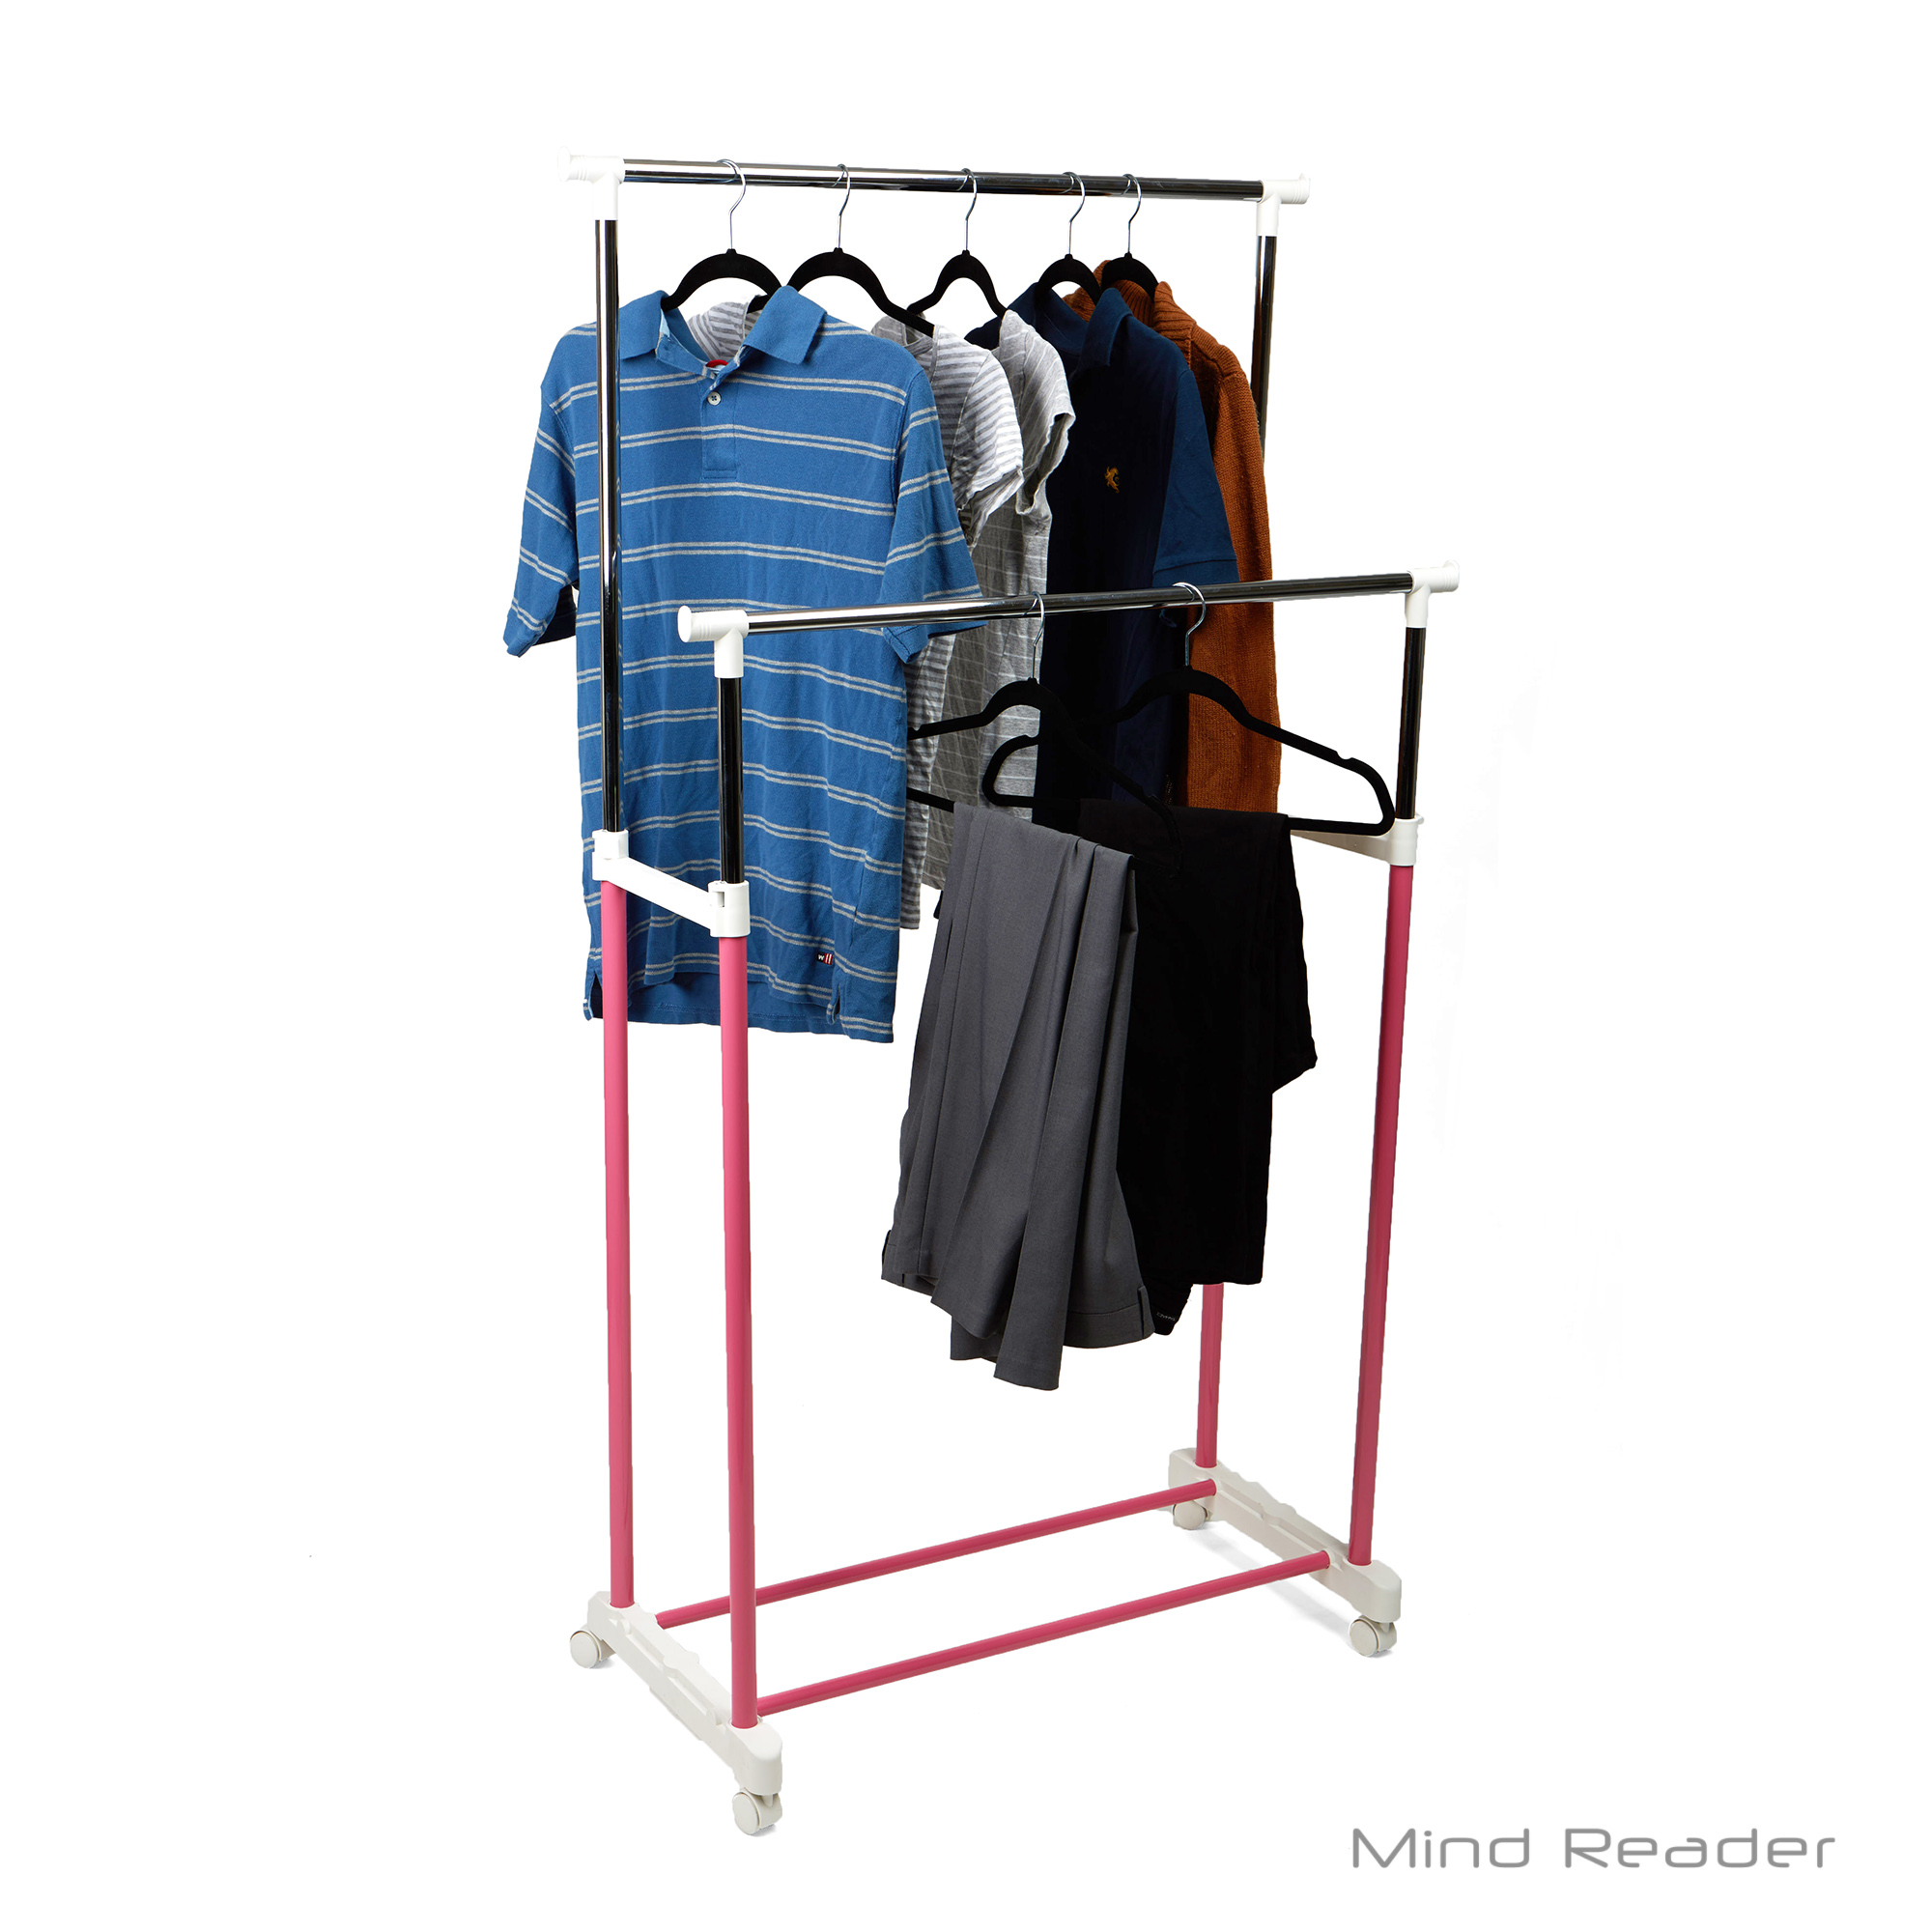 Mind Reader Double Rail Rolling Clothing Garment Rack Organizer, Metal, Portable, Pink